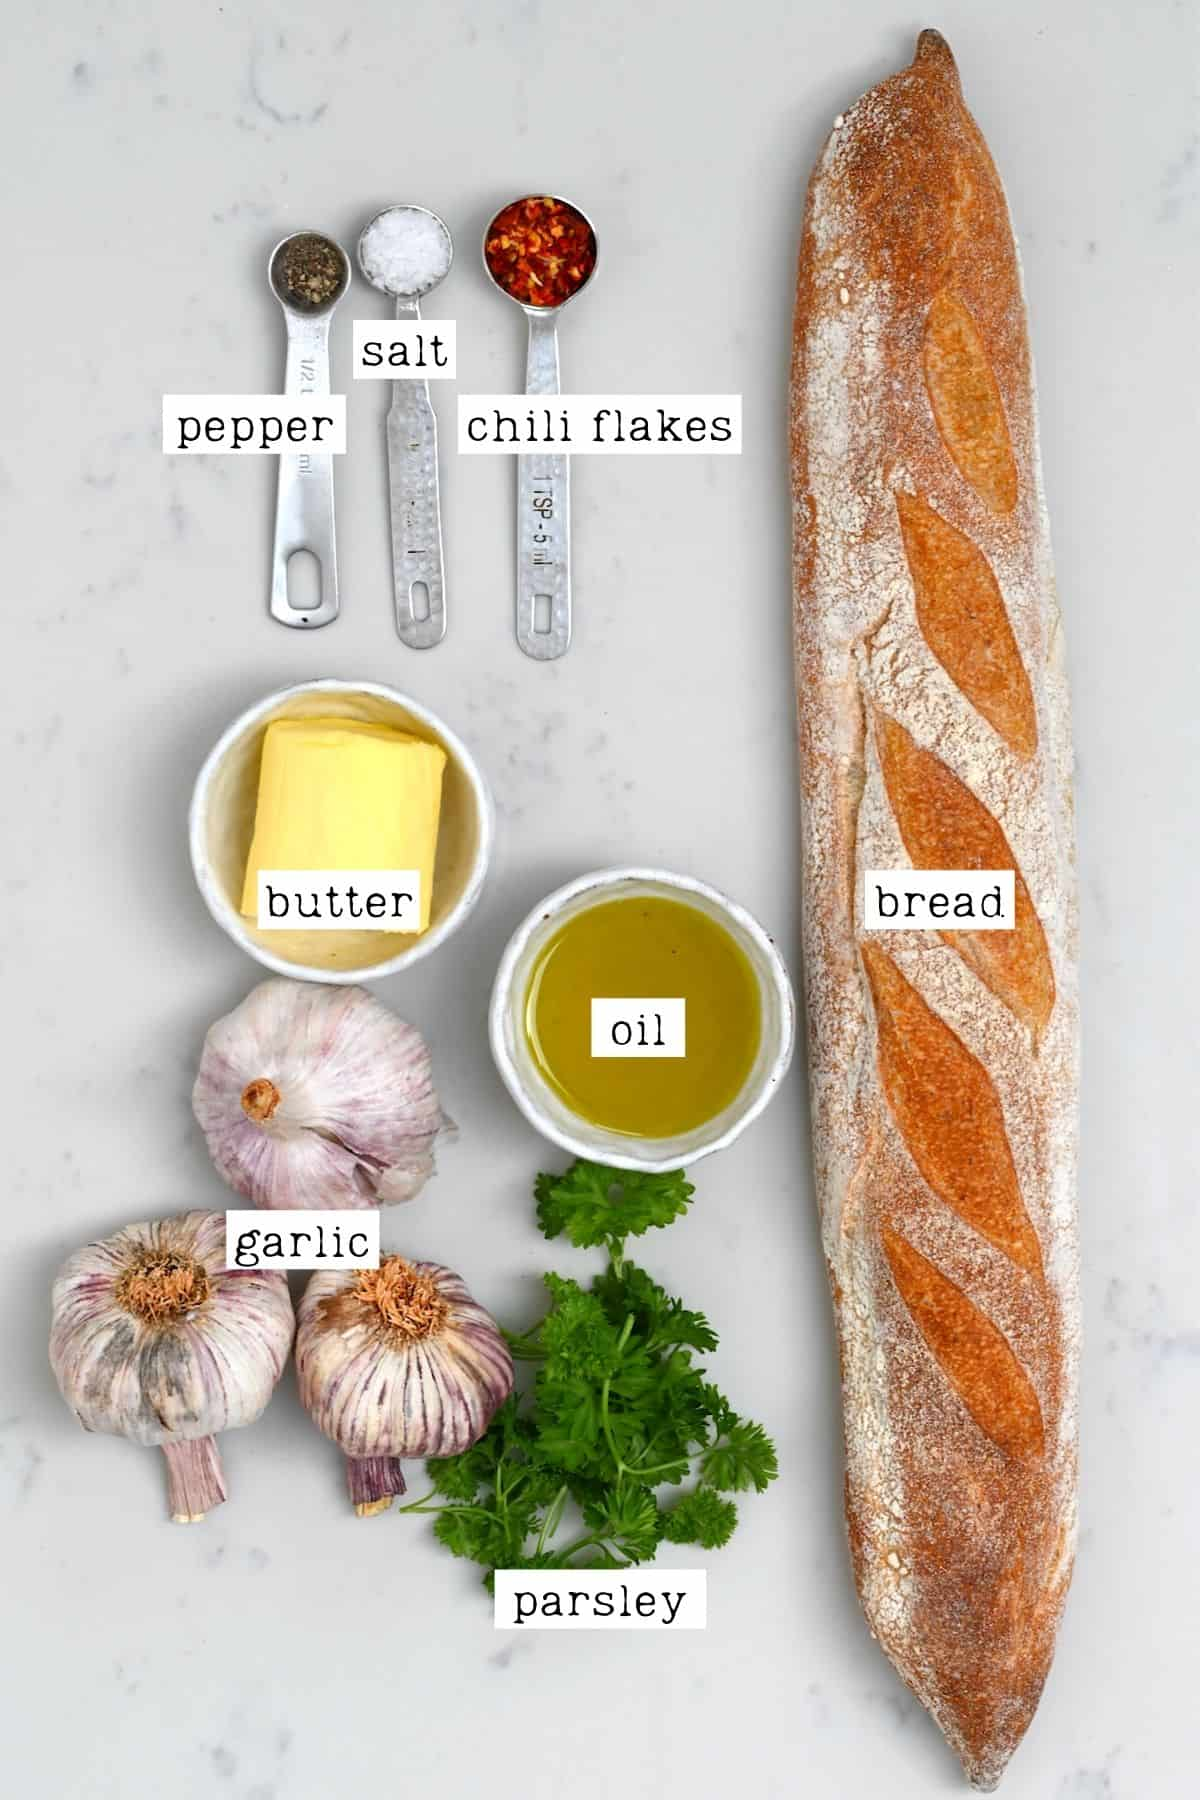 Ingredients for roasted garlic bread